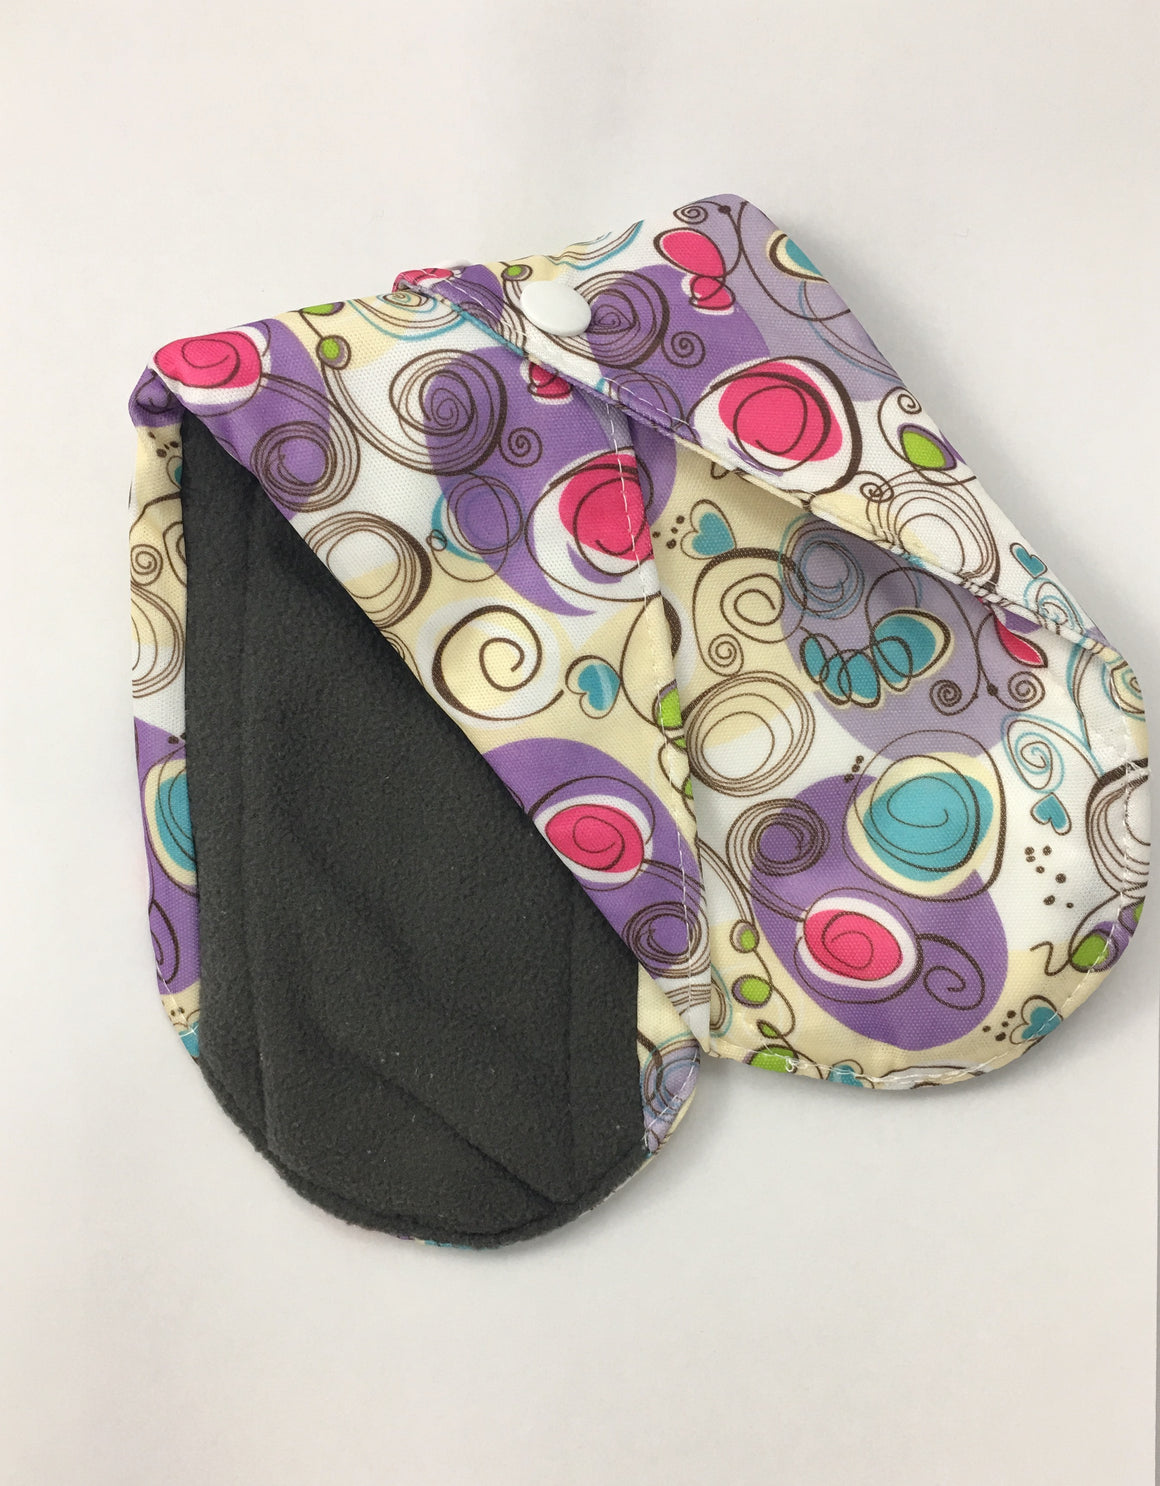 Cloth Pads (Set of 2)